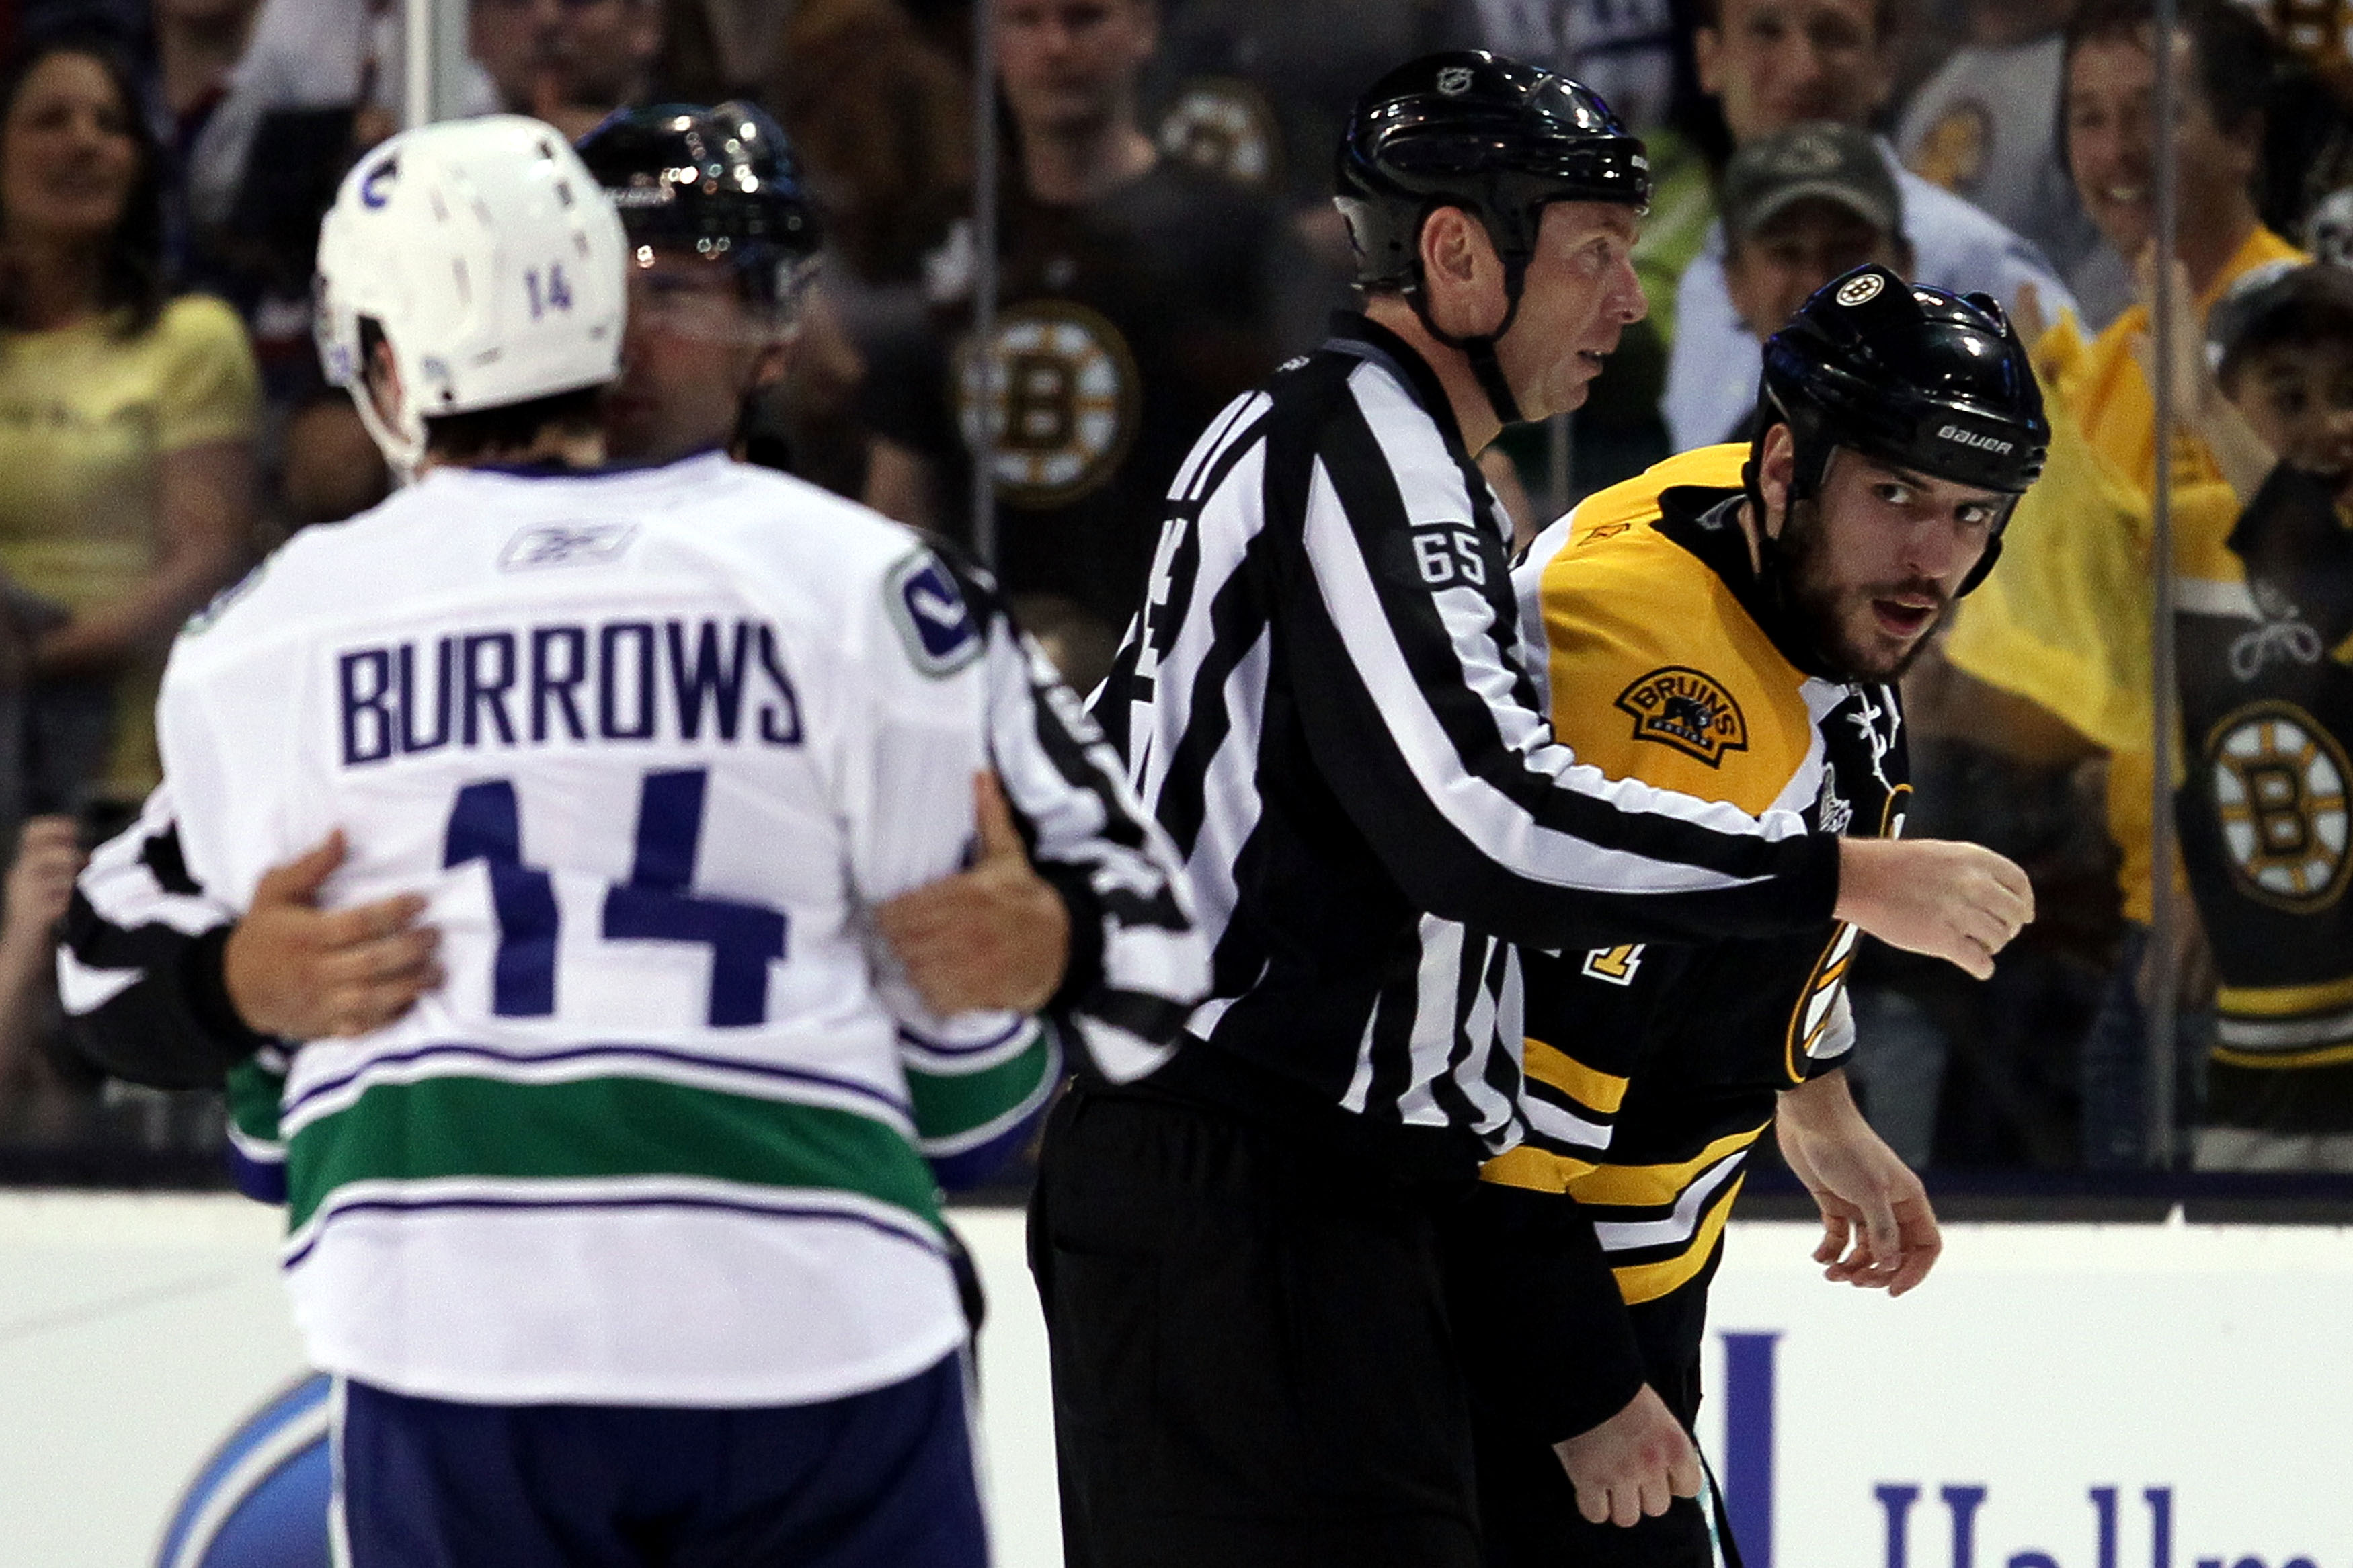 BOSTON, MA - JUNE 06:  Linesman Pierre Racicot #65 breaks up a fight between Milan Lucic #17 of the Boston Bruins and Alex Burrows #14 of the Vancouver Canucks during Game Three of the 2011 NHL Stanley Cup Final at TD Garden on June 6, 2011 in Boston, Mas